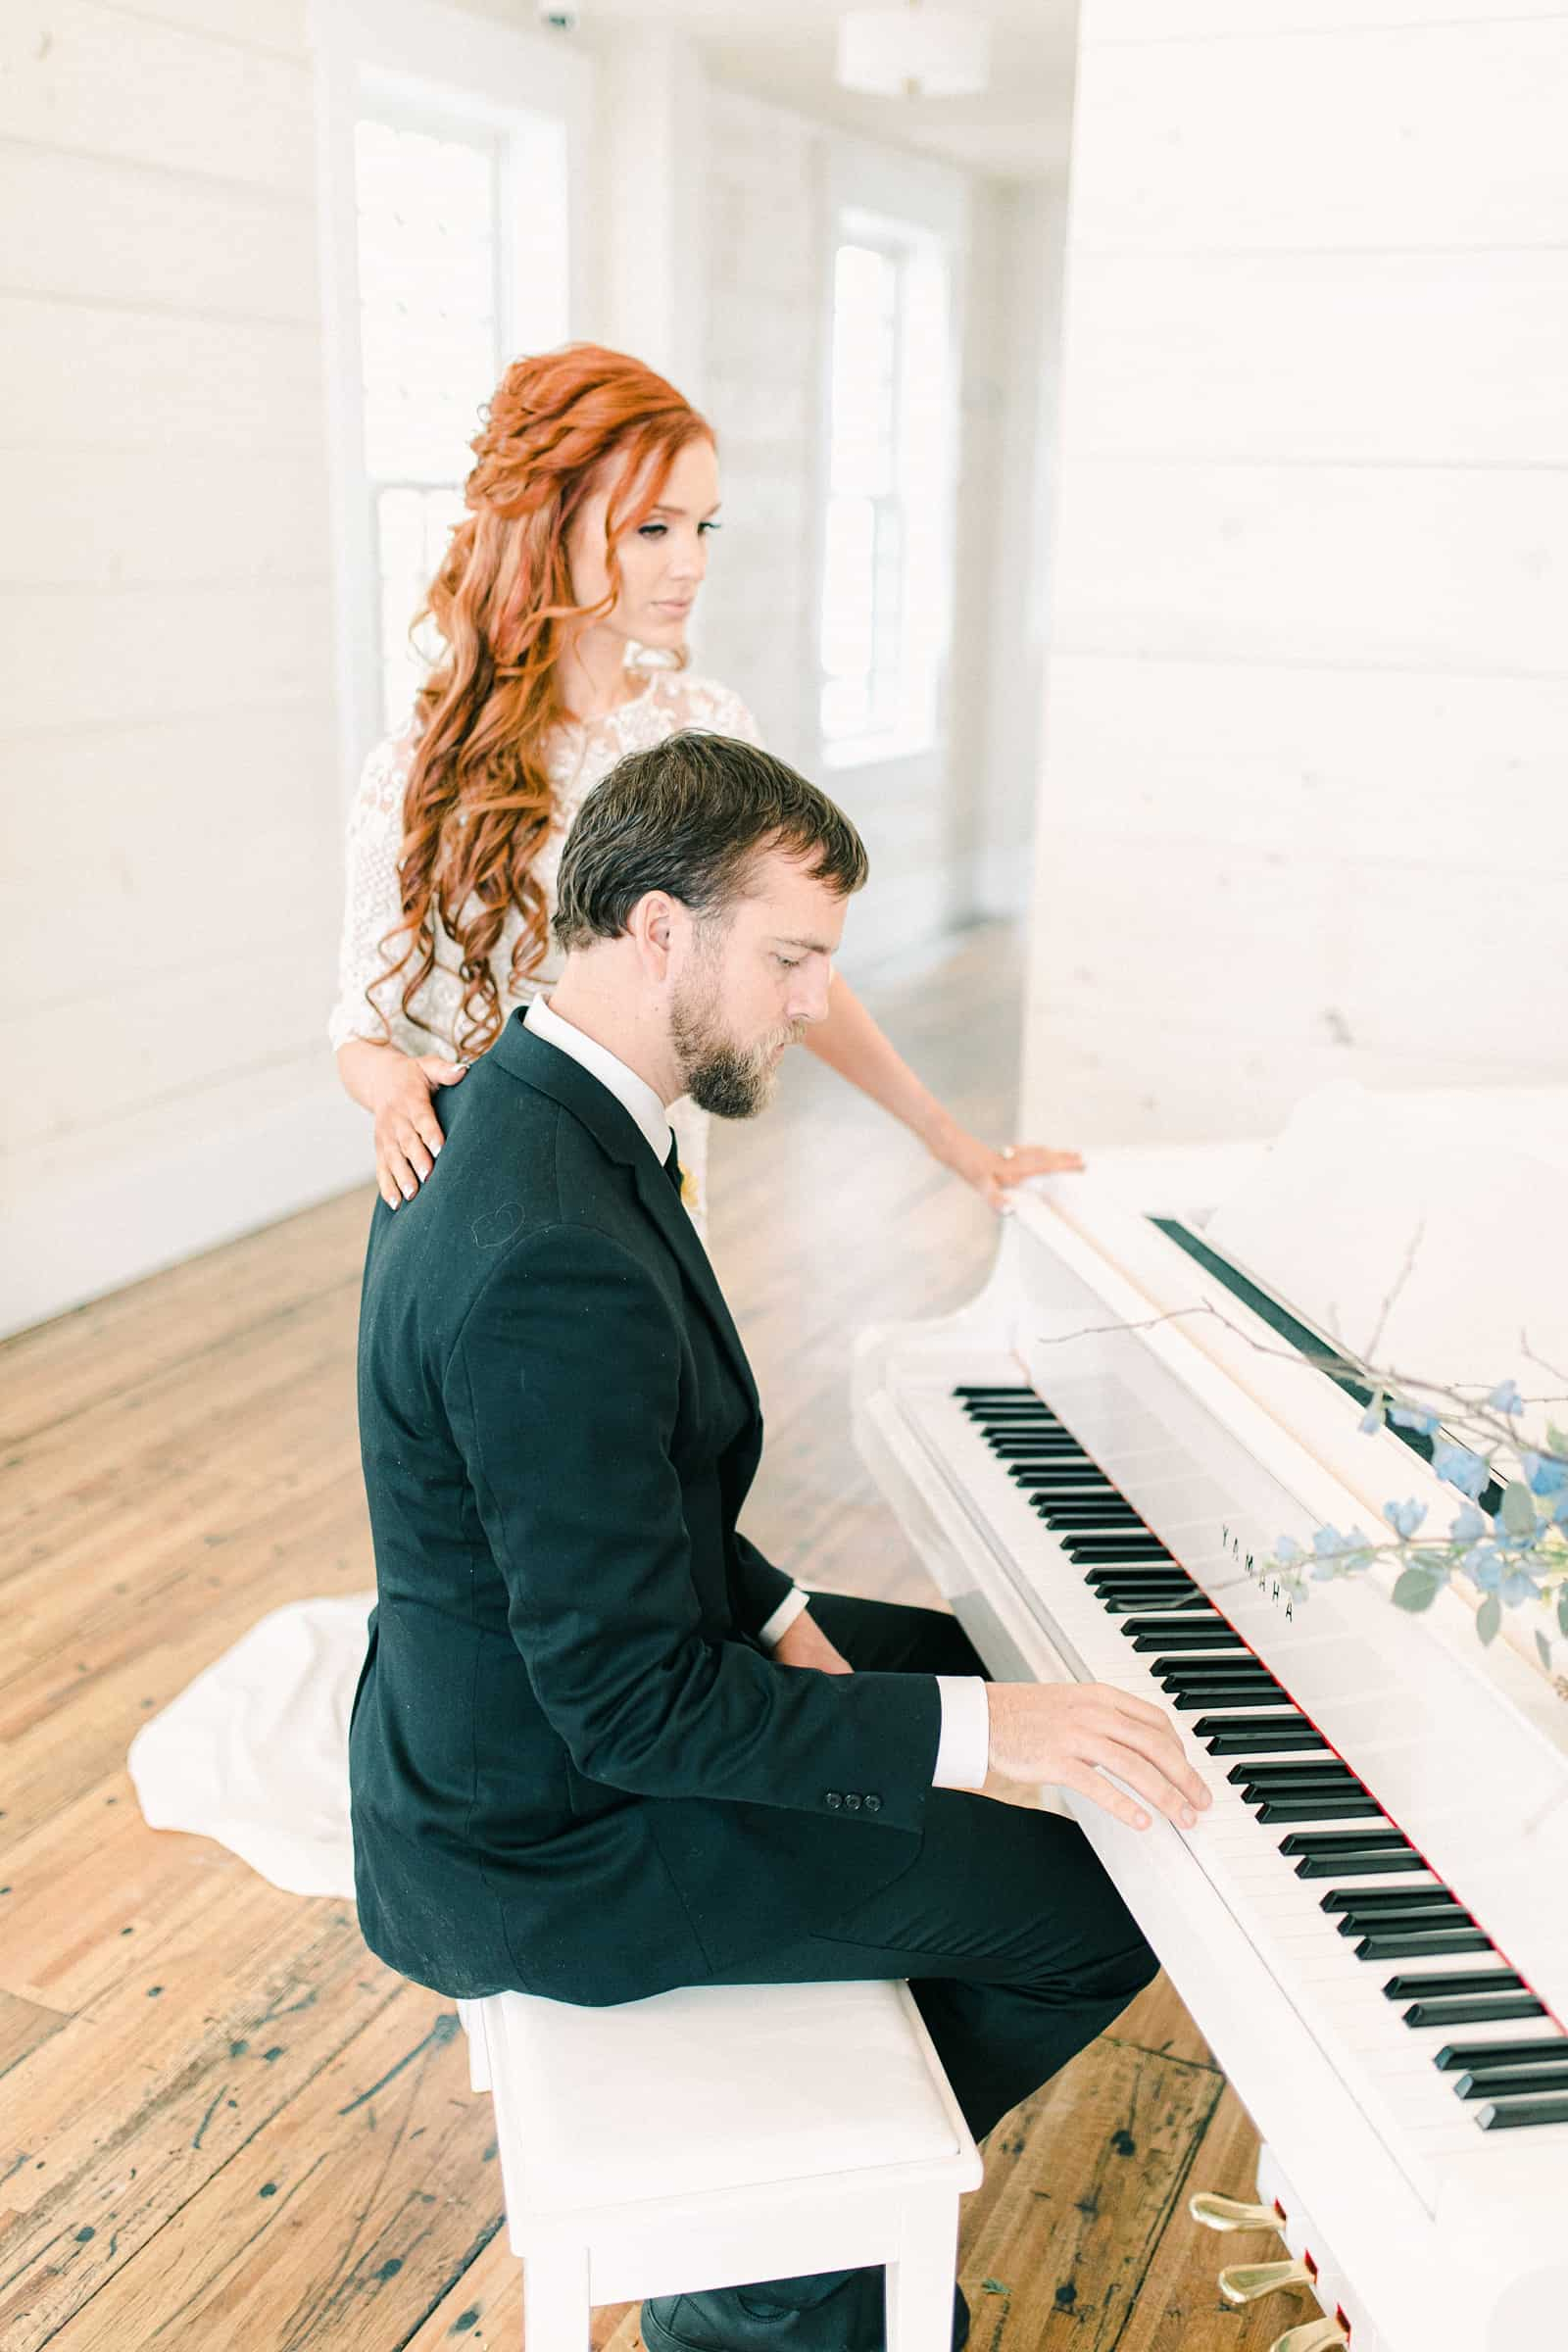 Groom plays white baby grand piano for bride on their wedding day